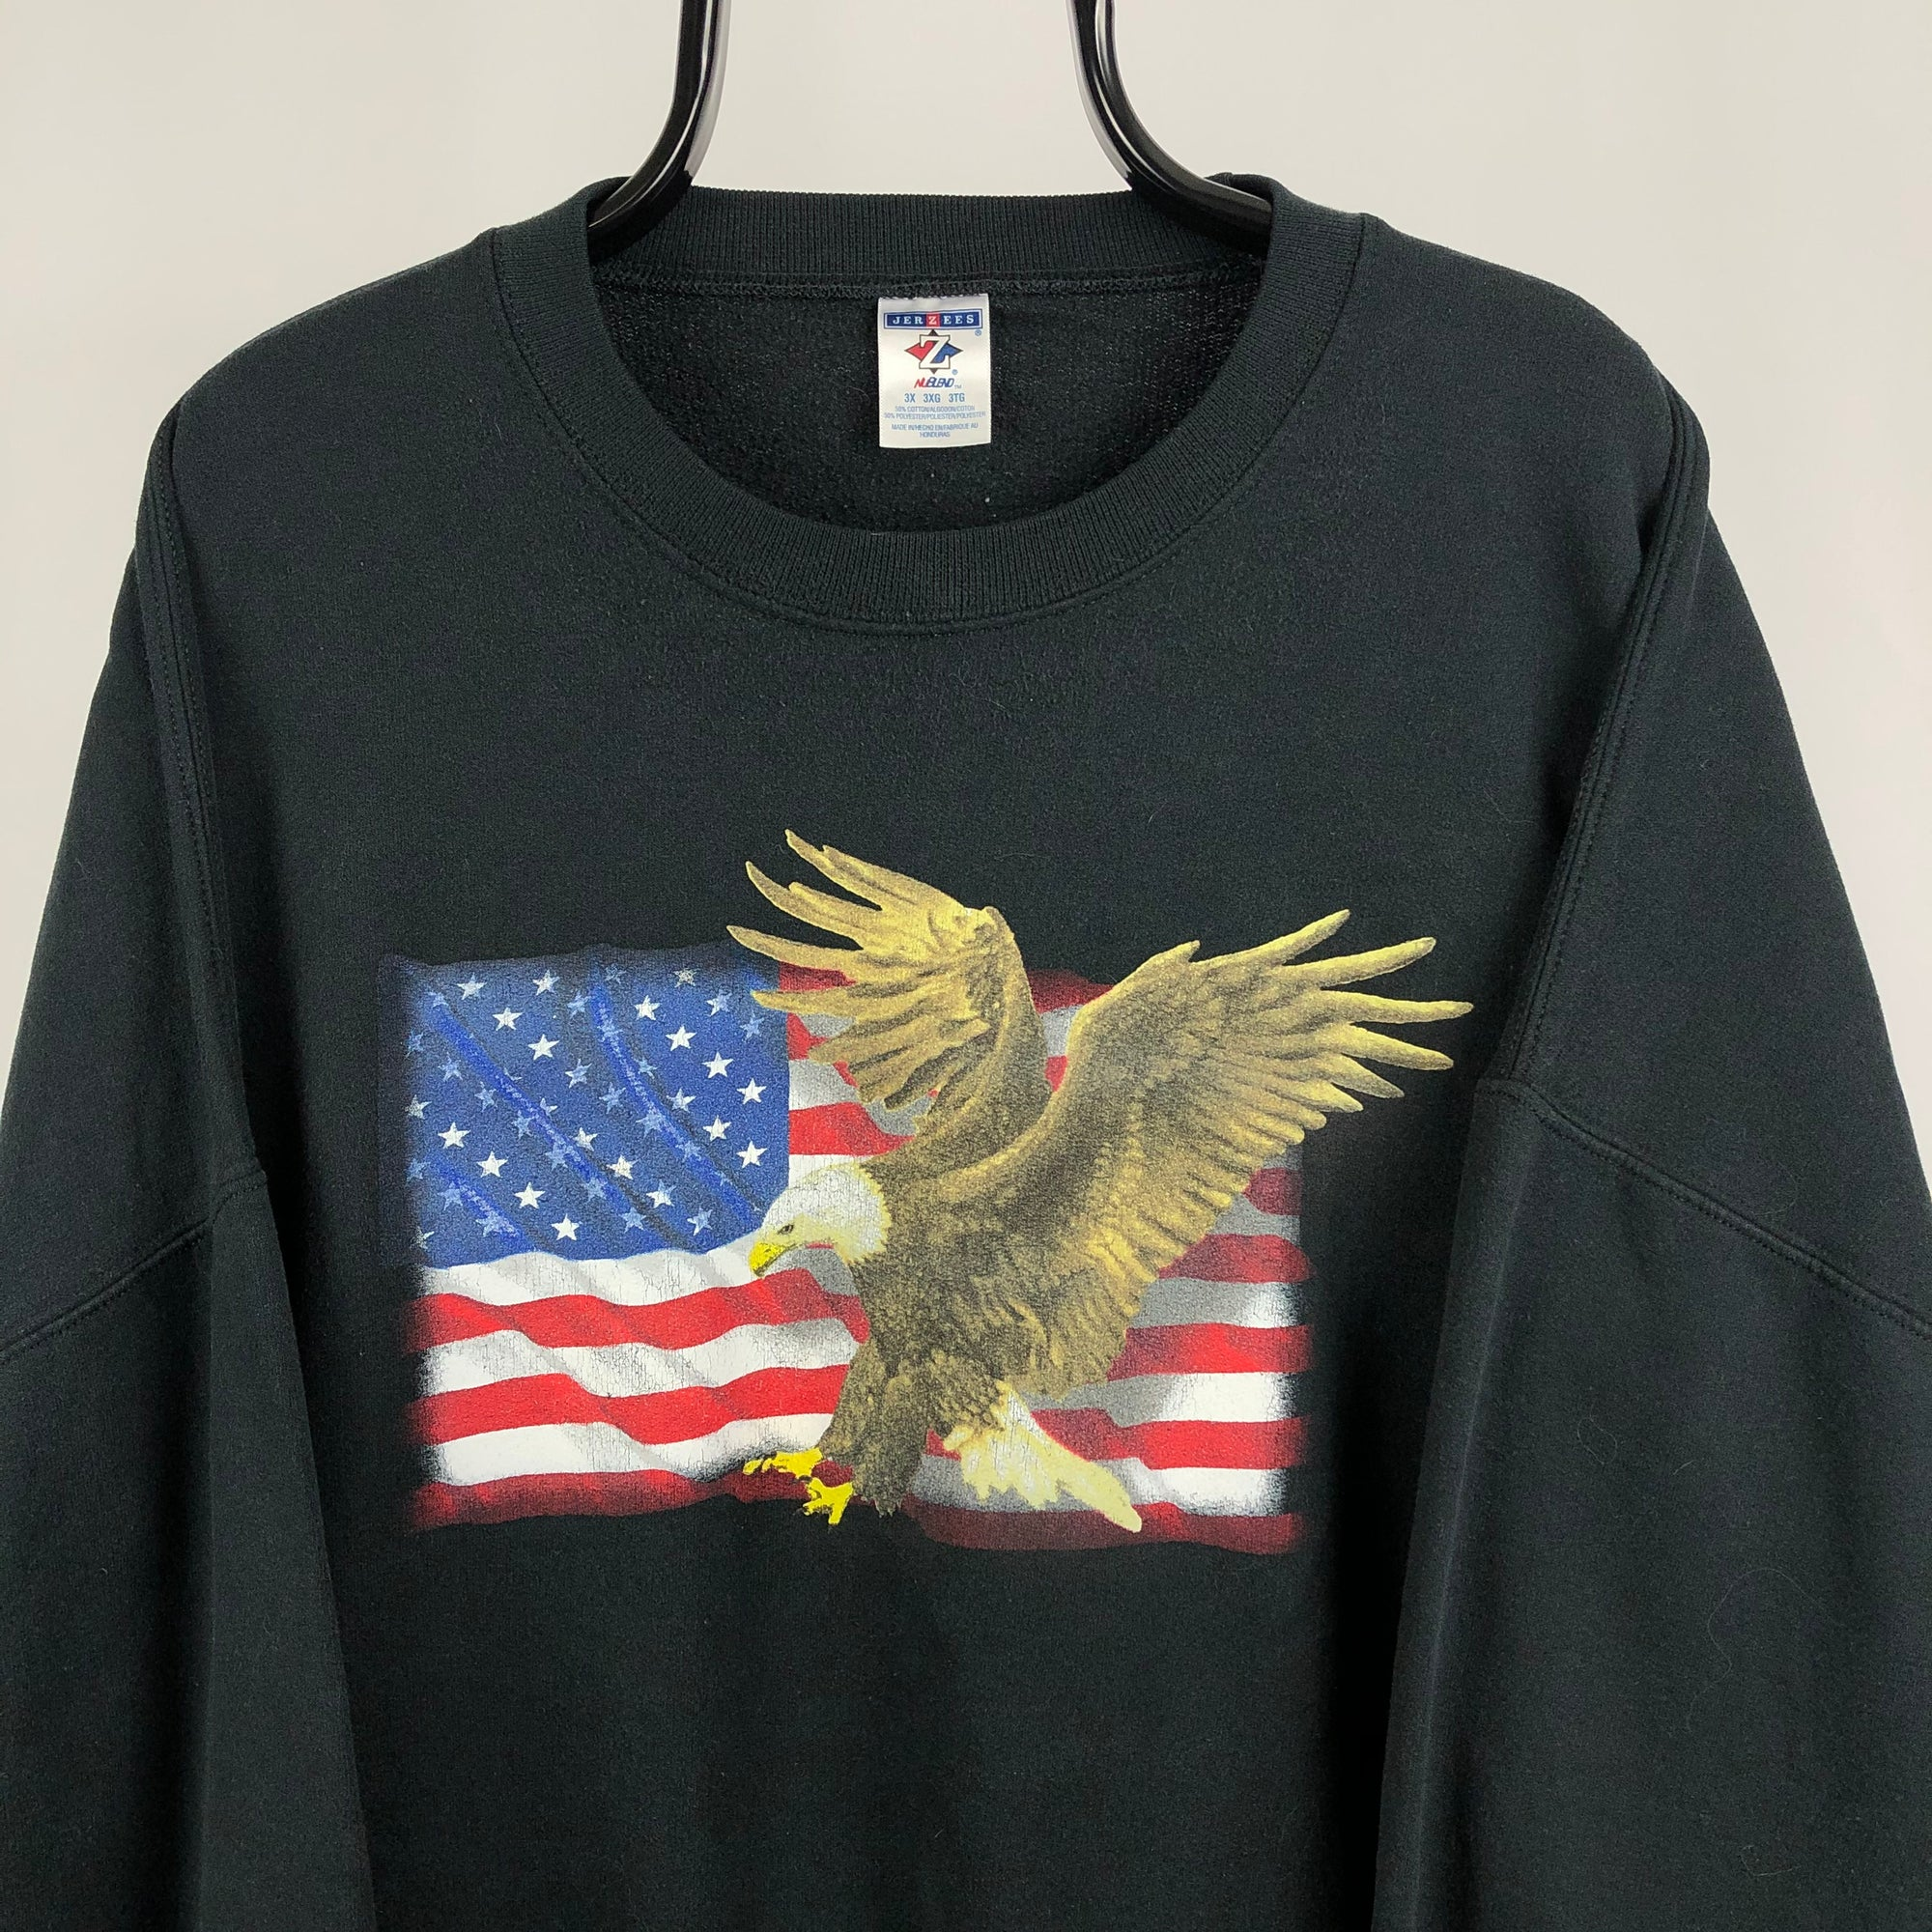 Vintage American Eagle Sweatshirt - Men's XXL/Women's XXXL